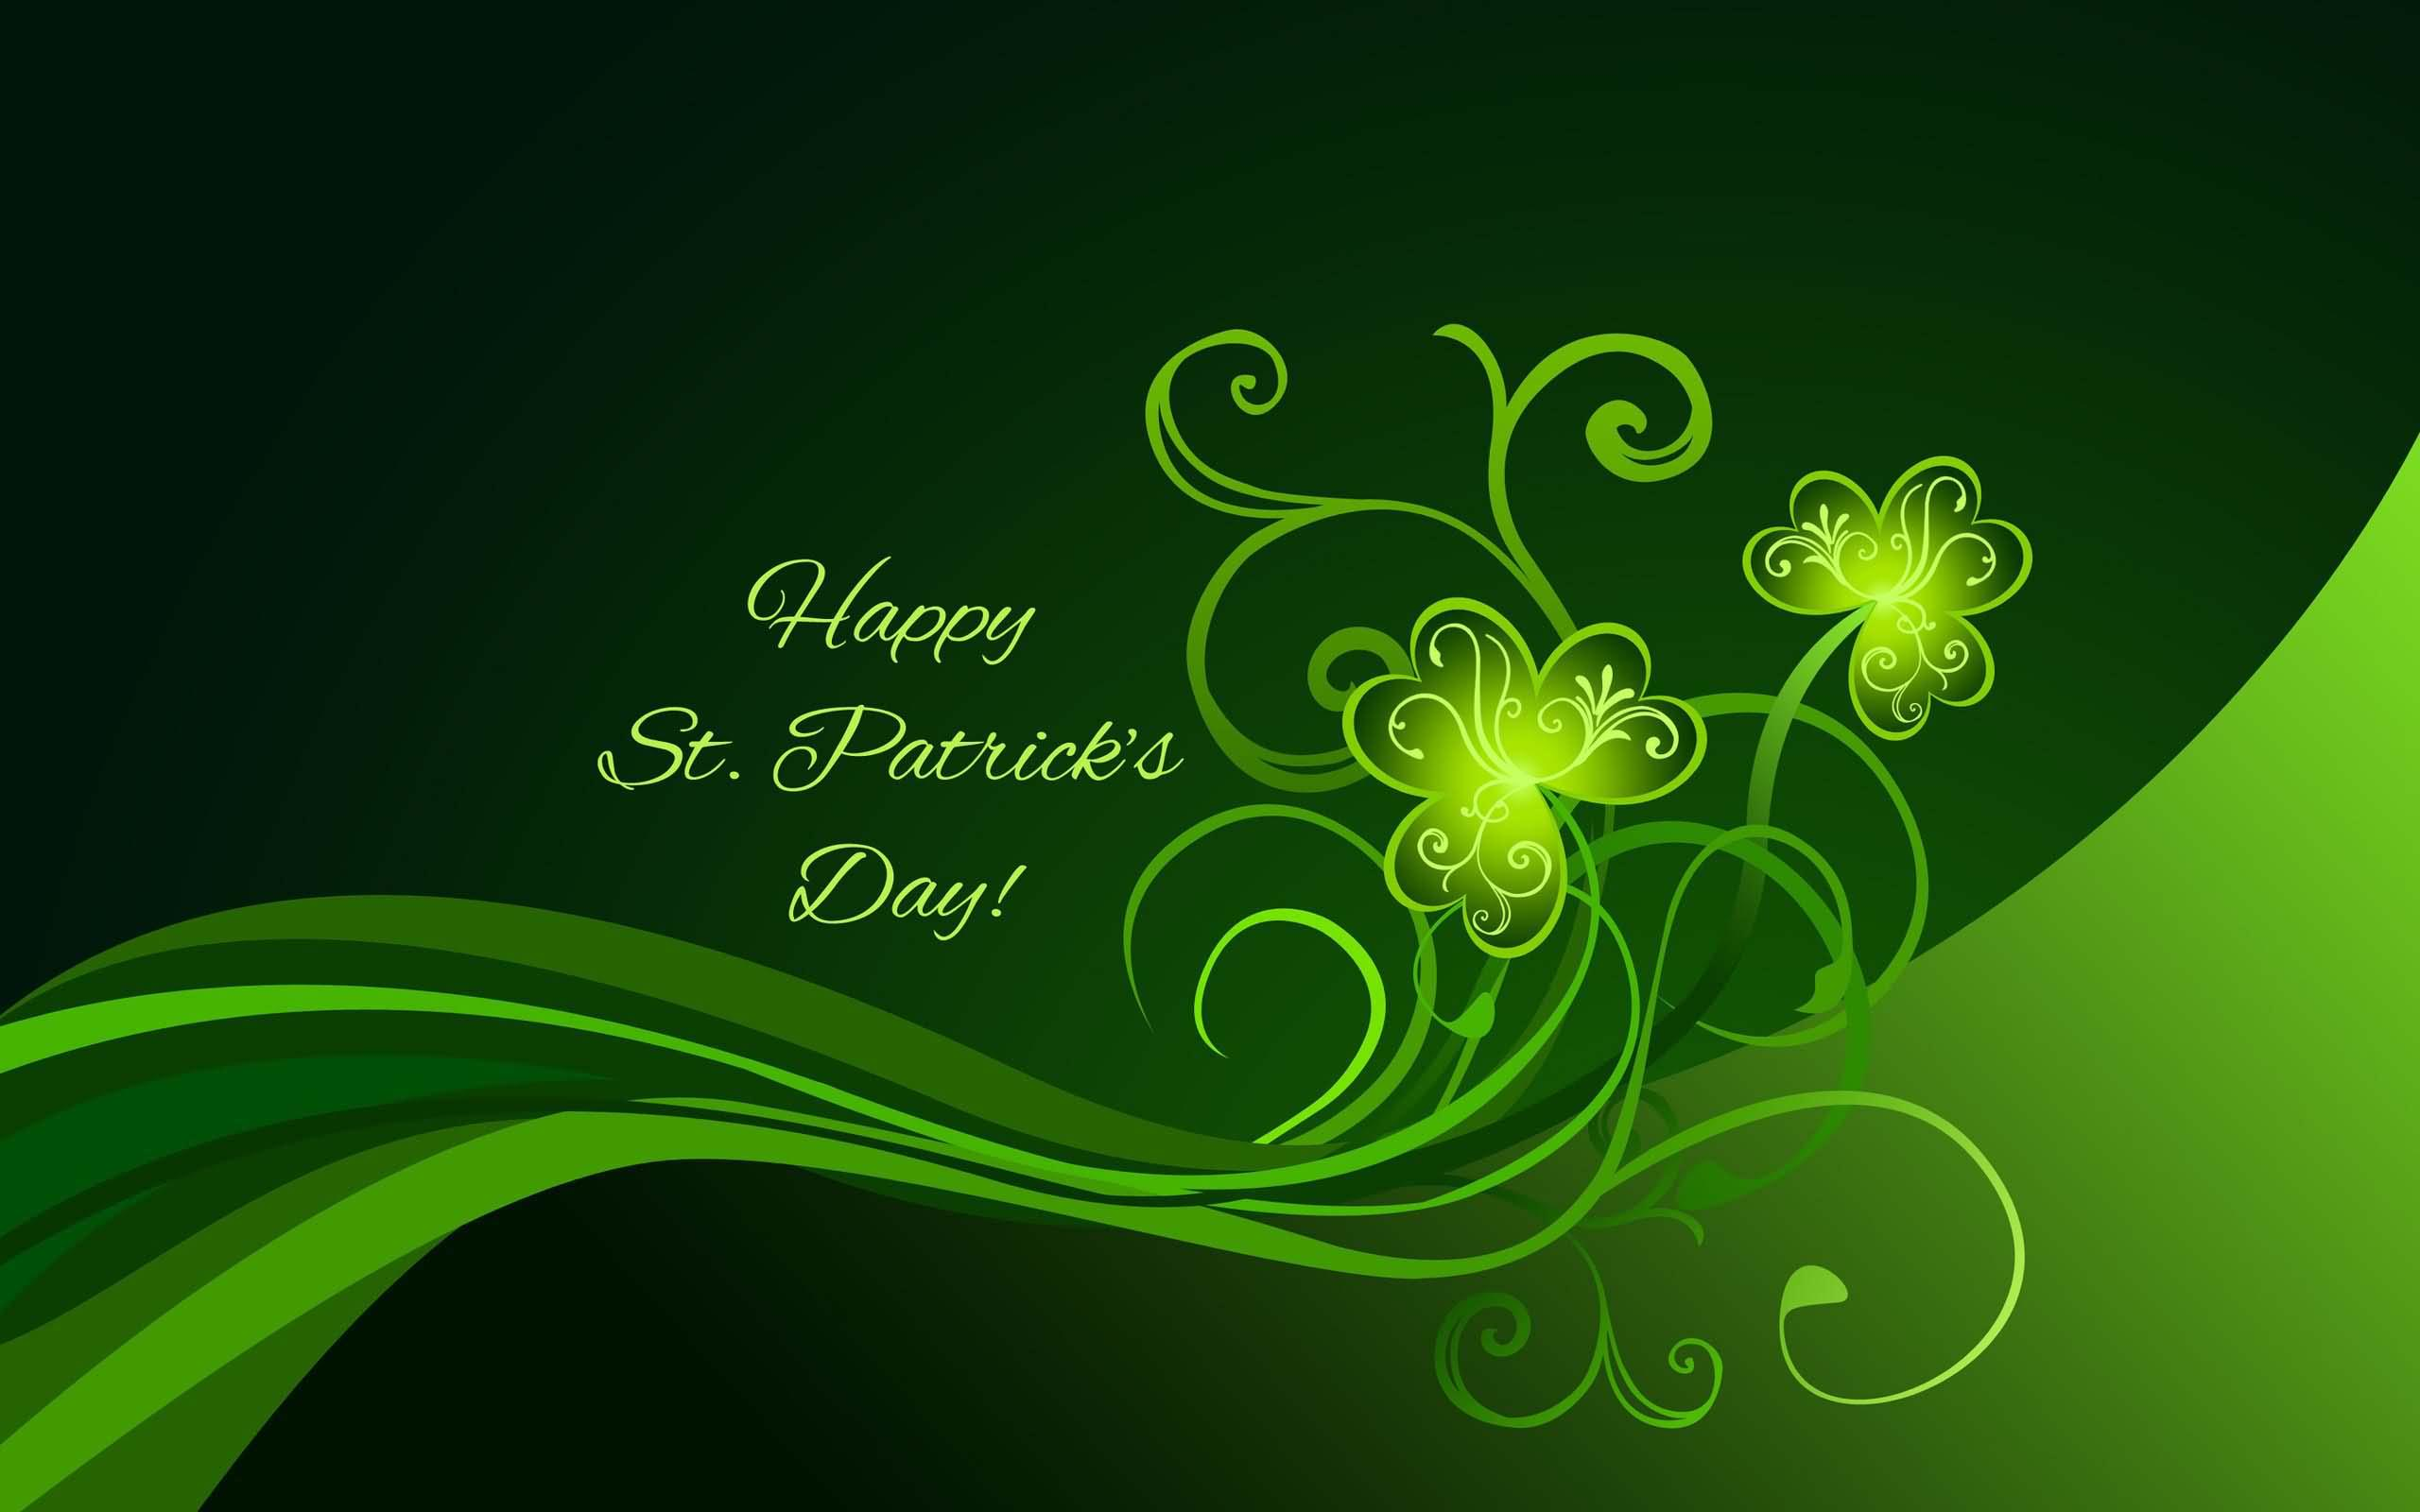 90-Saint Patricks Day Wishes